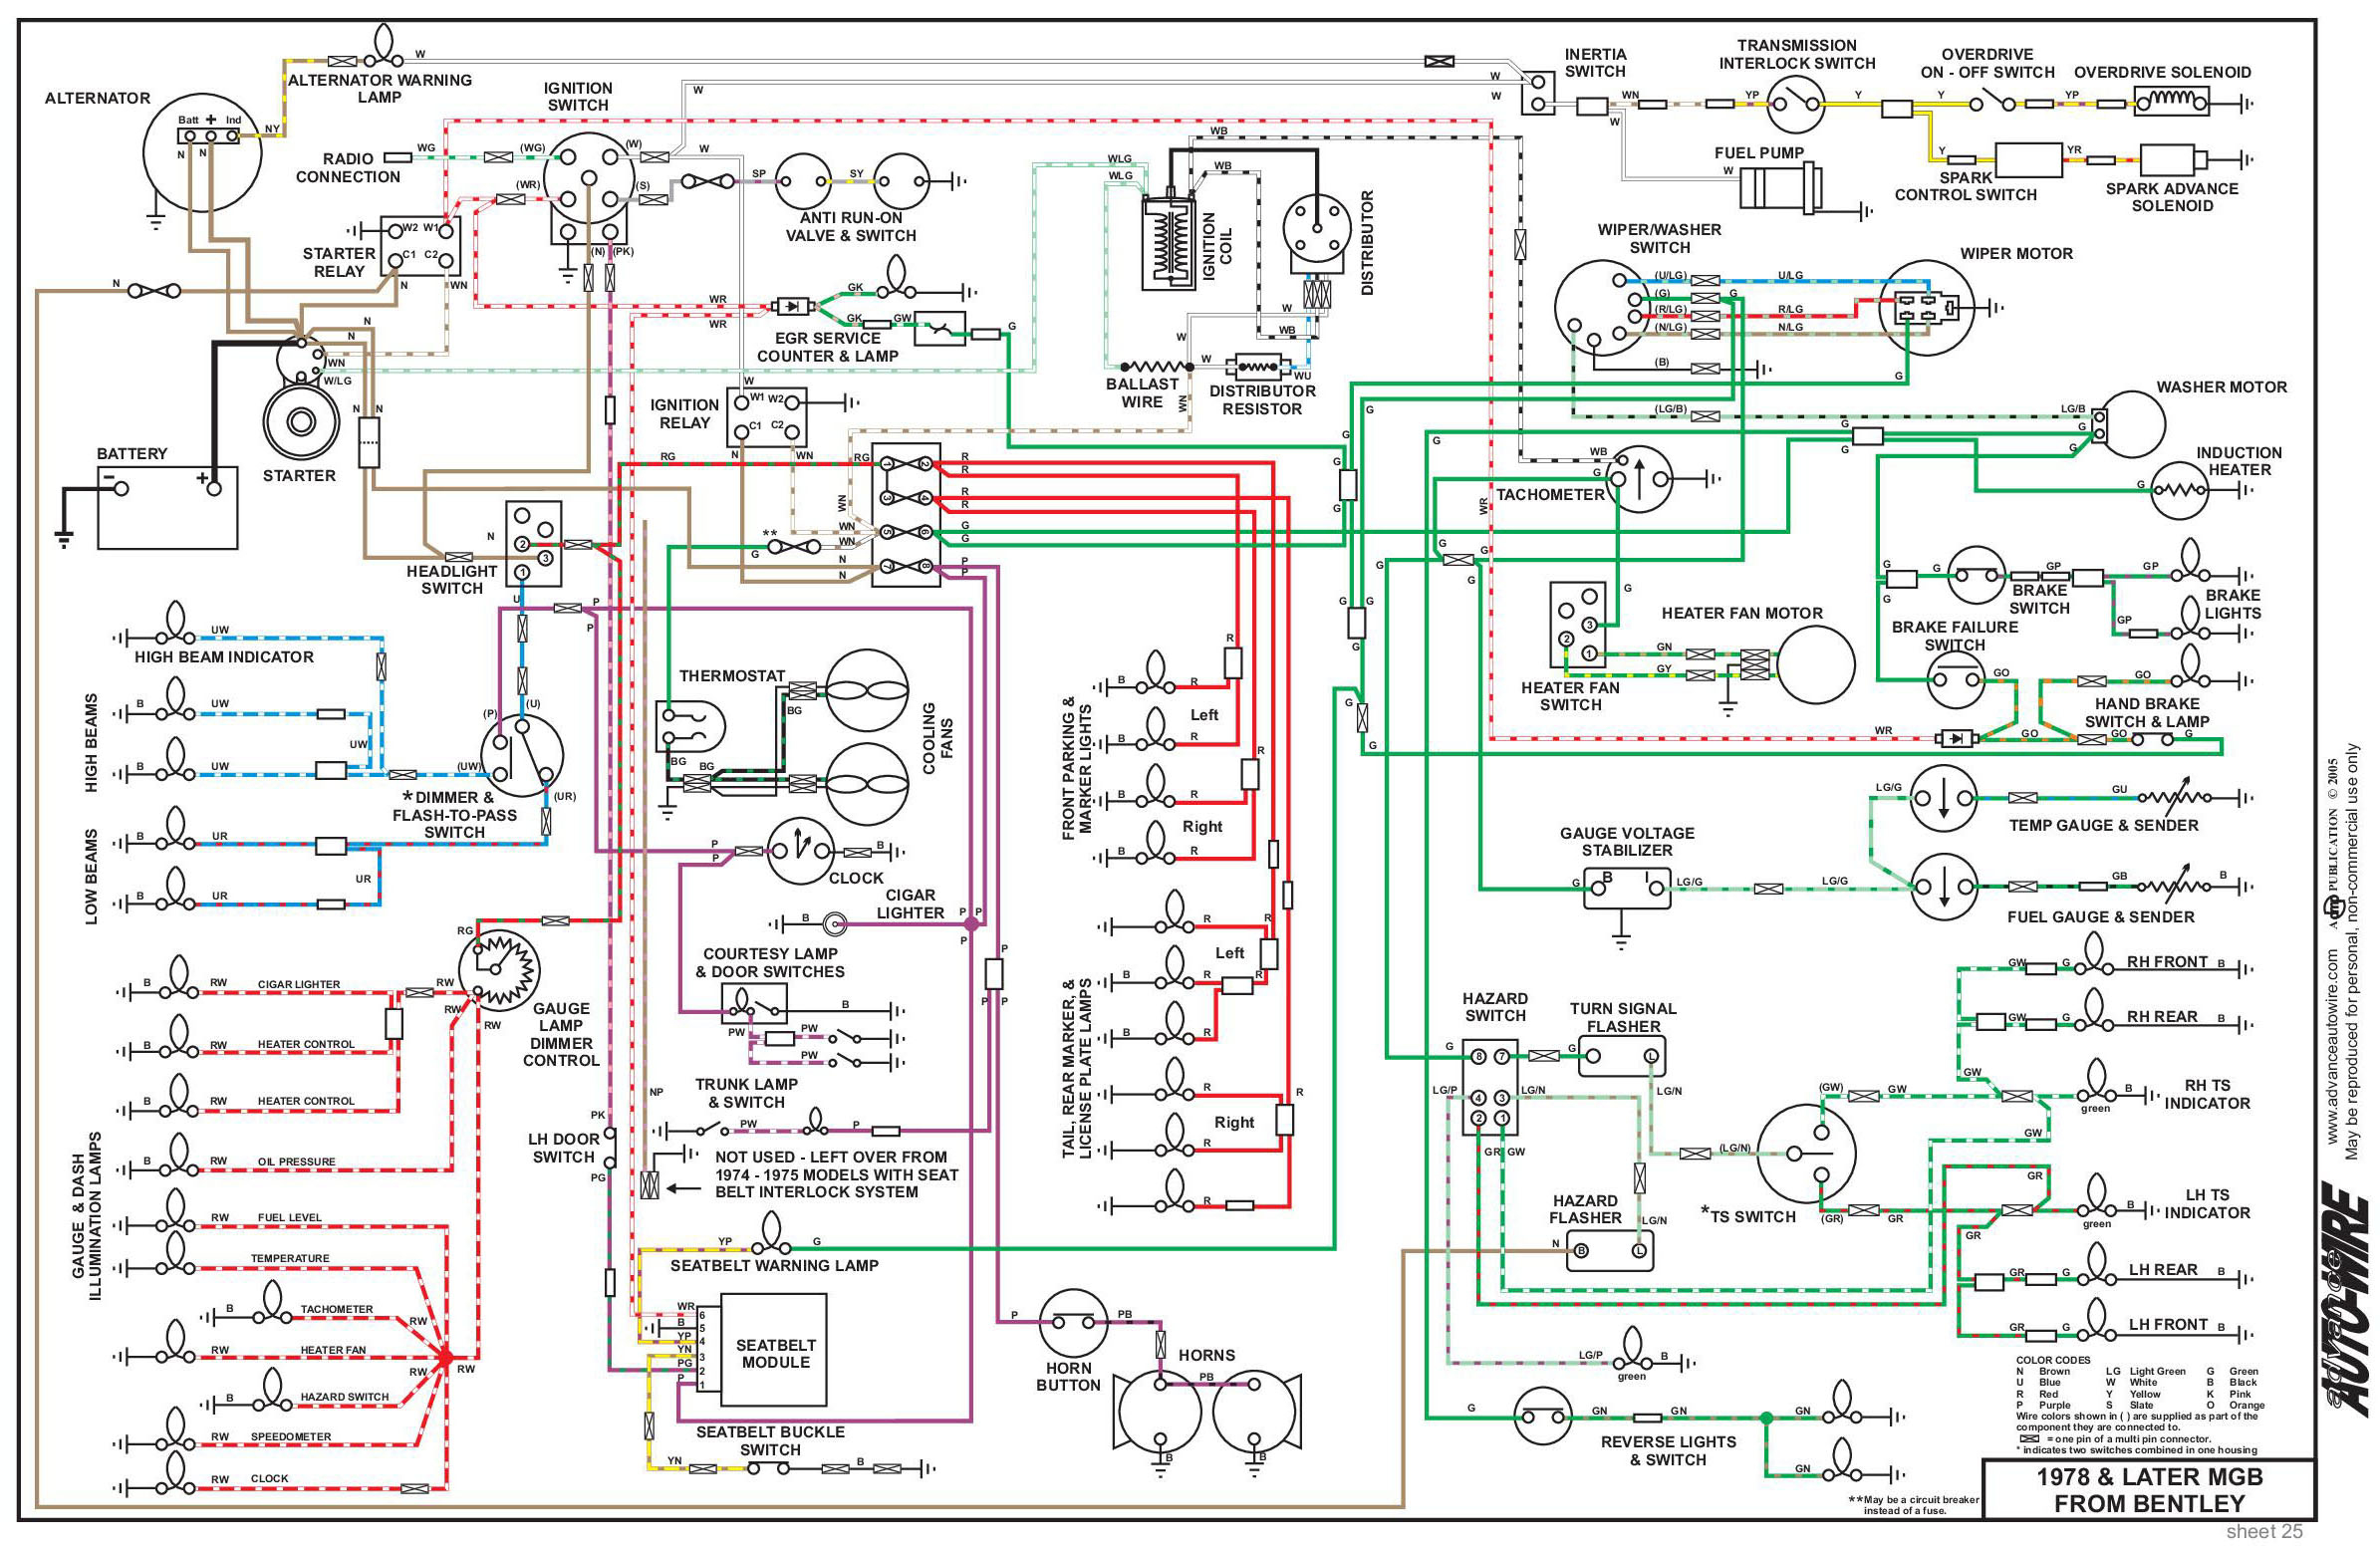 DIAGRAM] 1980 Mg Mgb Wiring Diagrams FULL Version HD Quality Wiring  Diagrams - BUTTERFLYDIAGRAMS.K-DANSE.FRDatabase diagramming tool - K-danse.fr